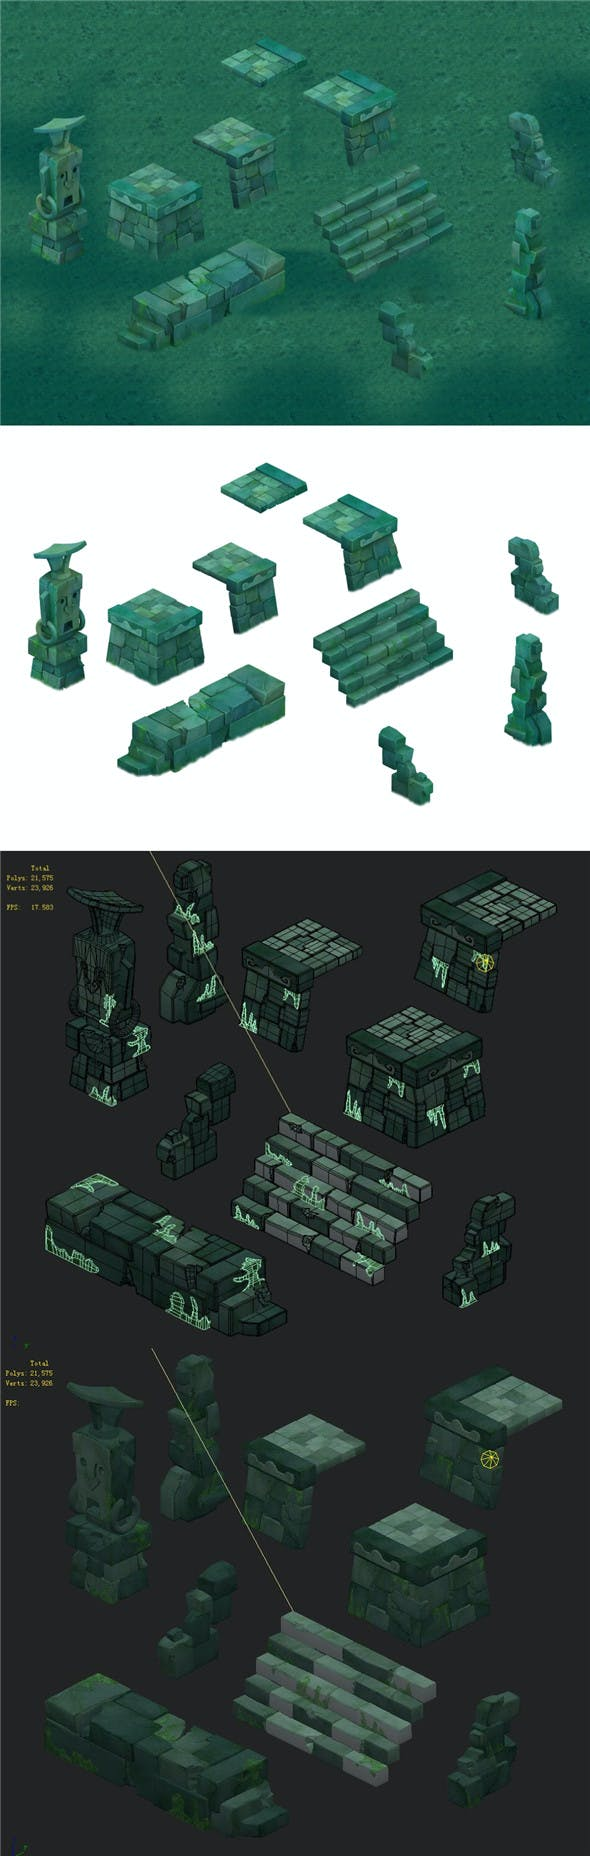 Cartoon version - Maya ruins - 3DOcean Item for Sale